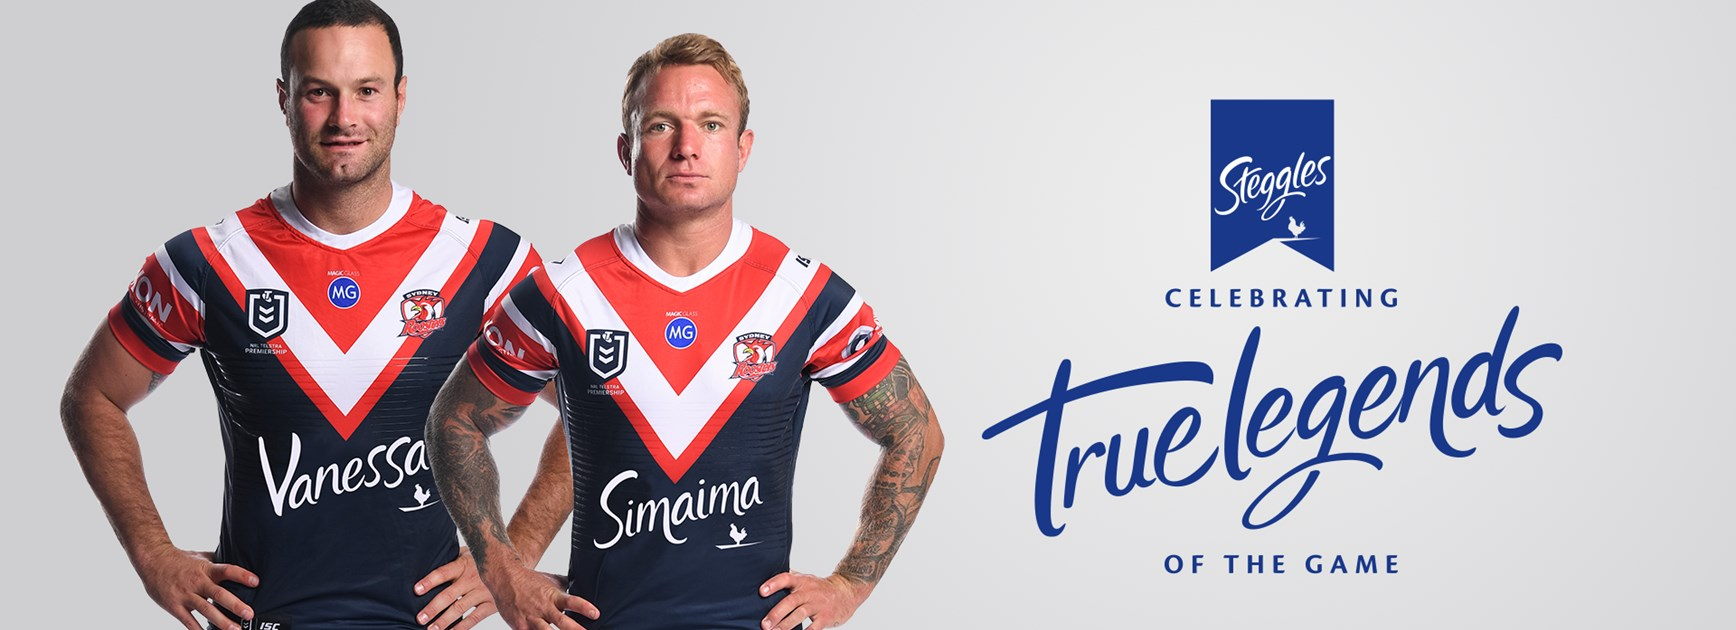 Steggles and Roosters support True Legends of the Game